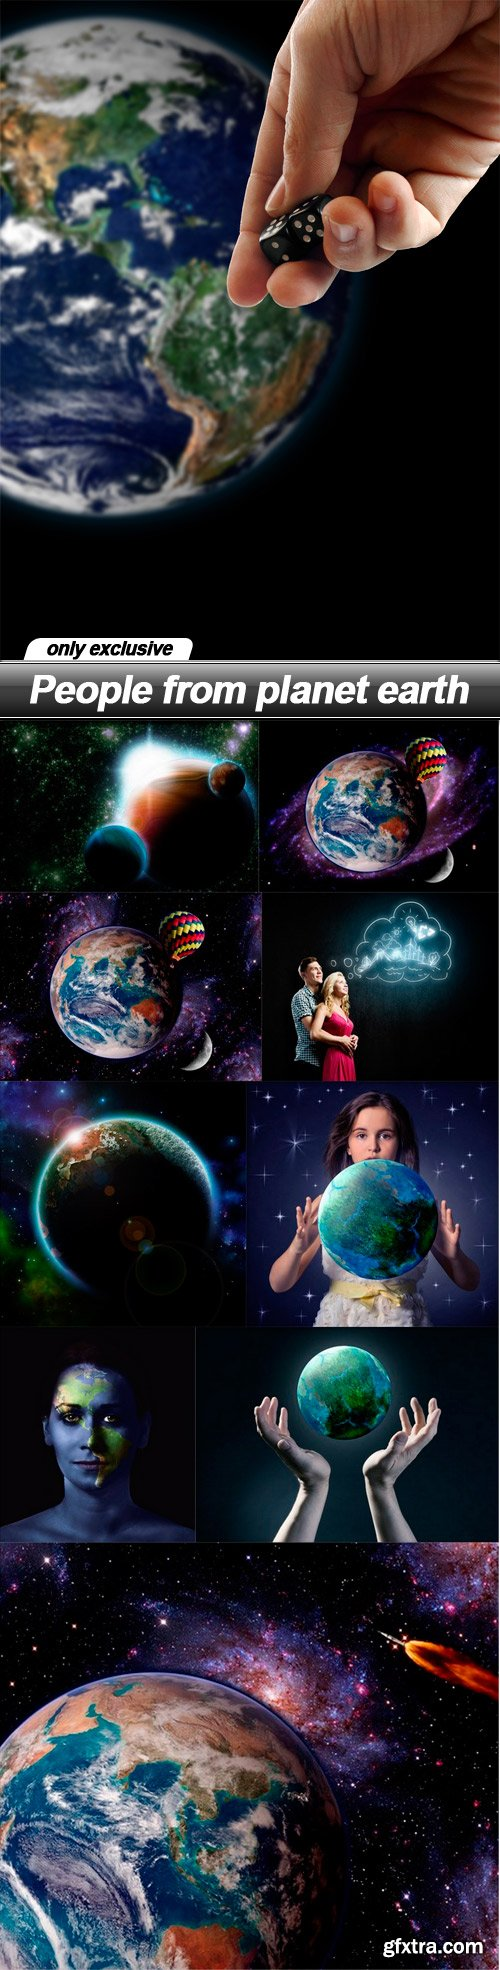 People from planet earth - 10 UHQ JPEG